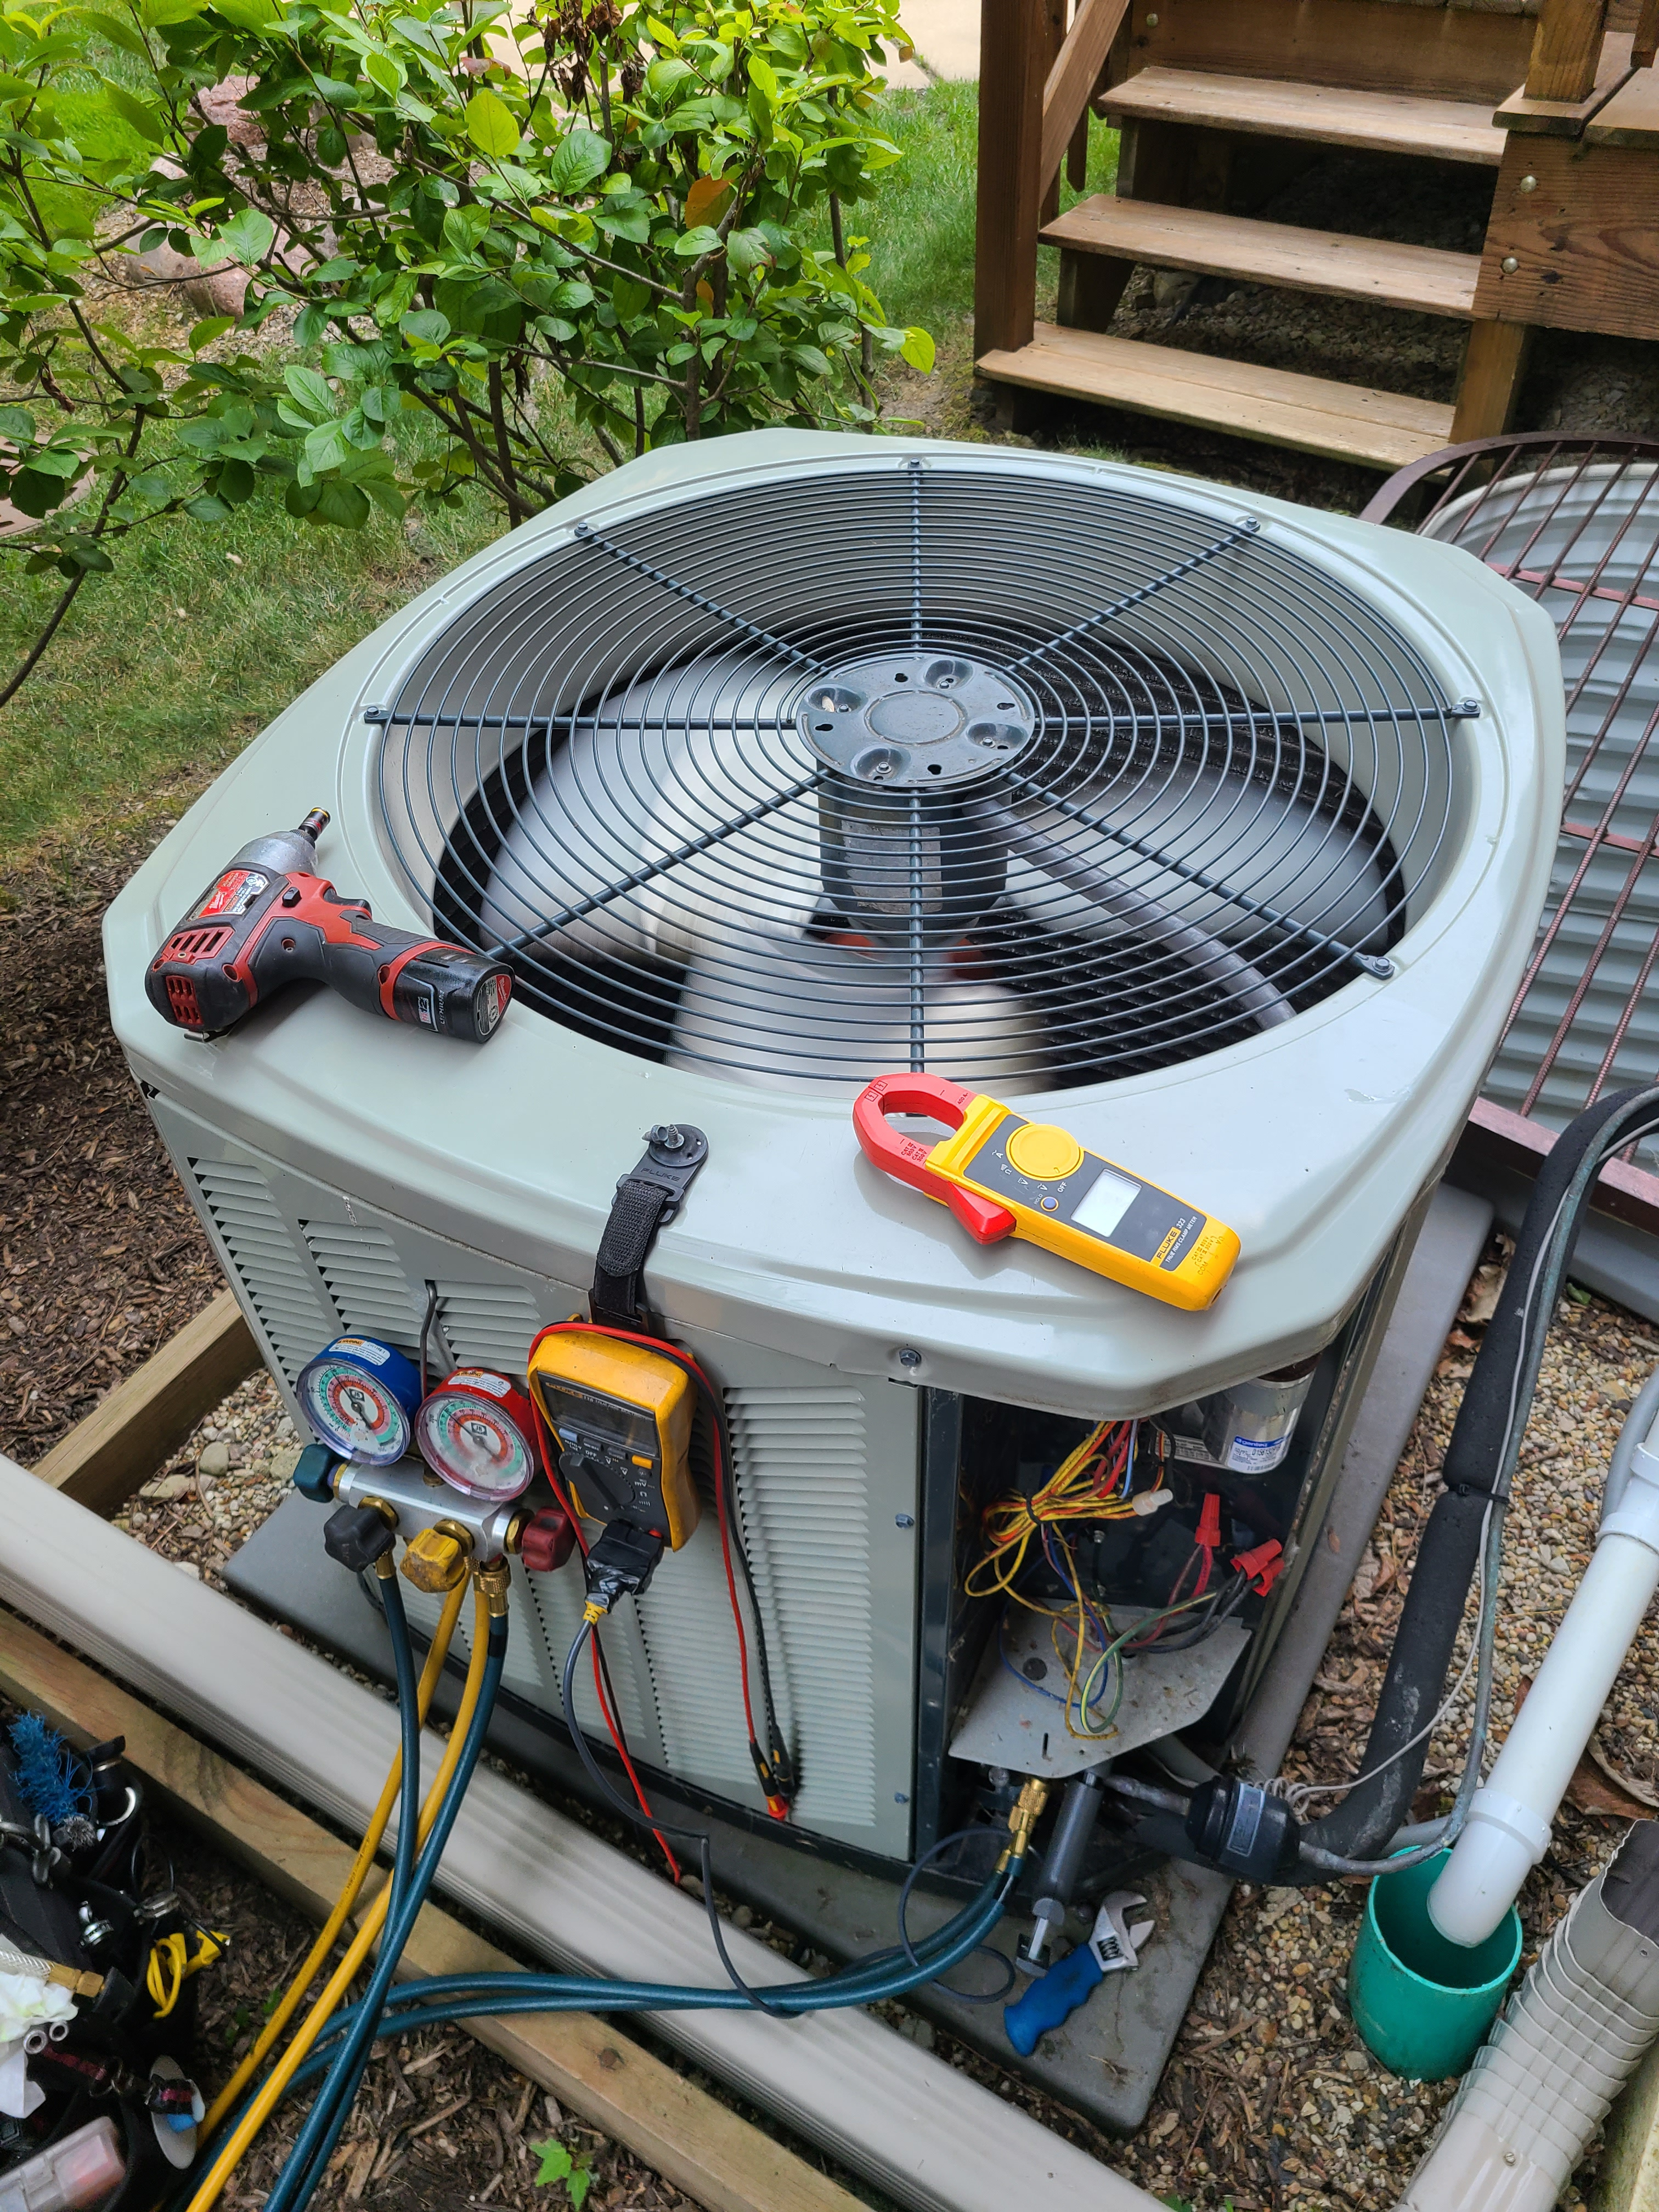 American Standard ac summer tune up. System cleaned and checked and ready for summer.